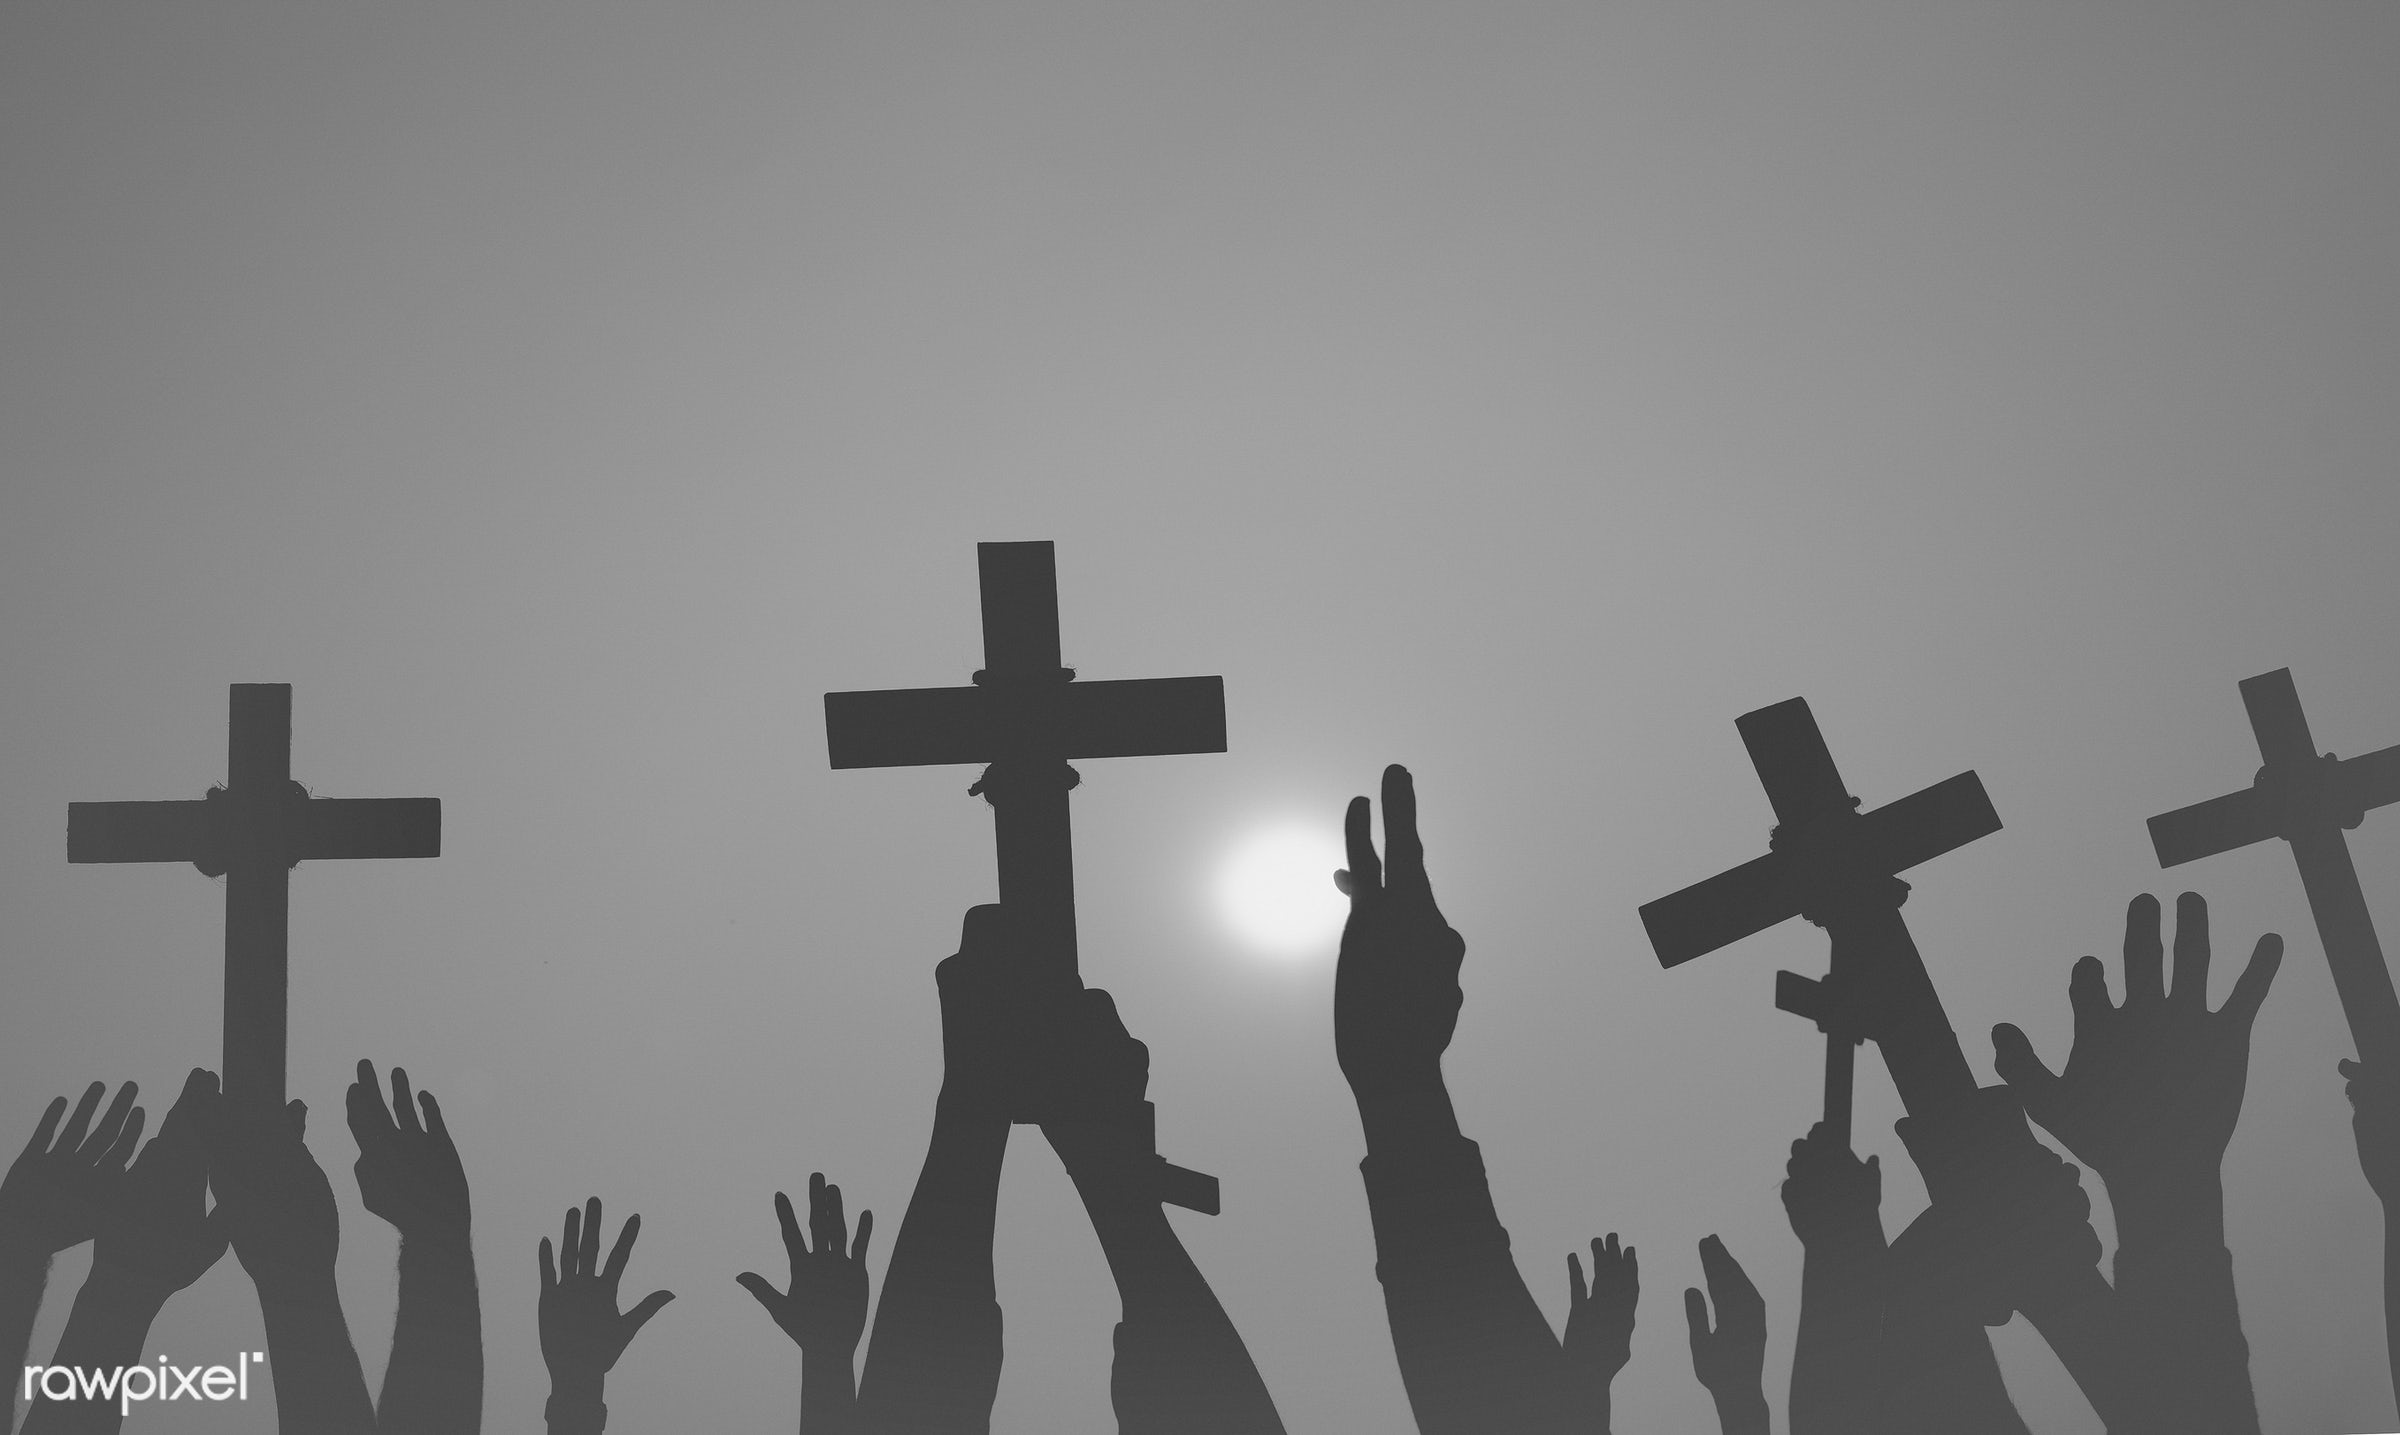 death, arm raised, aspiration, bowing, catholicism, cemetery, christianity, concepts and ideas, connect, connection, cross,...